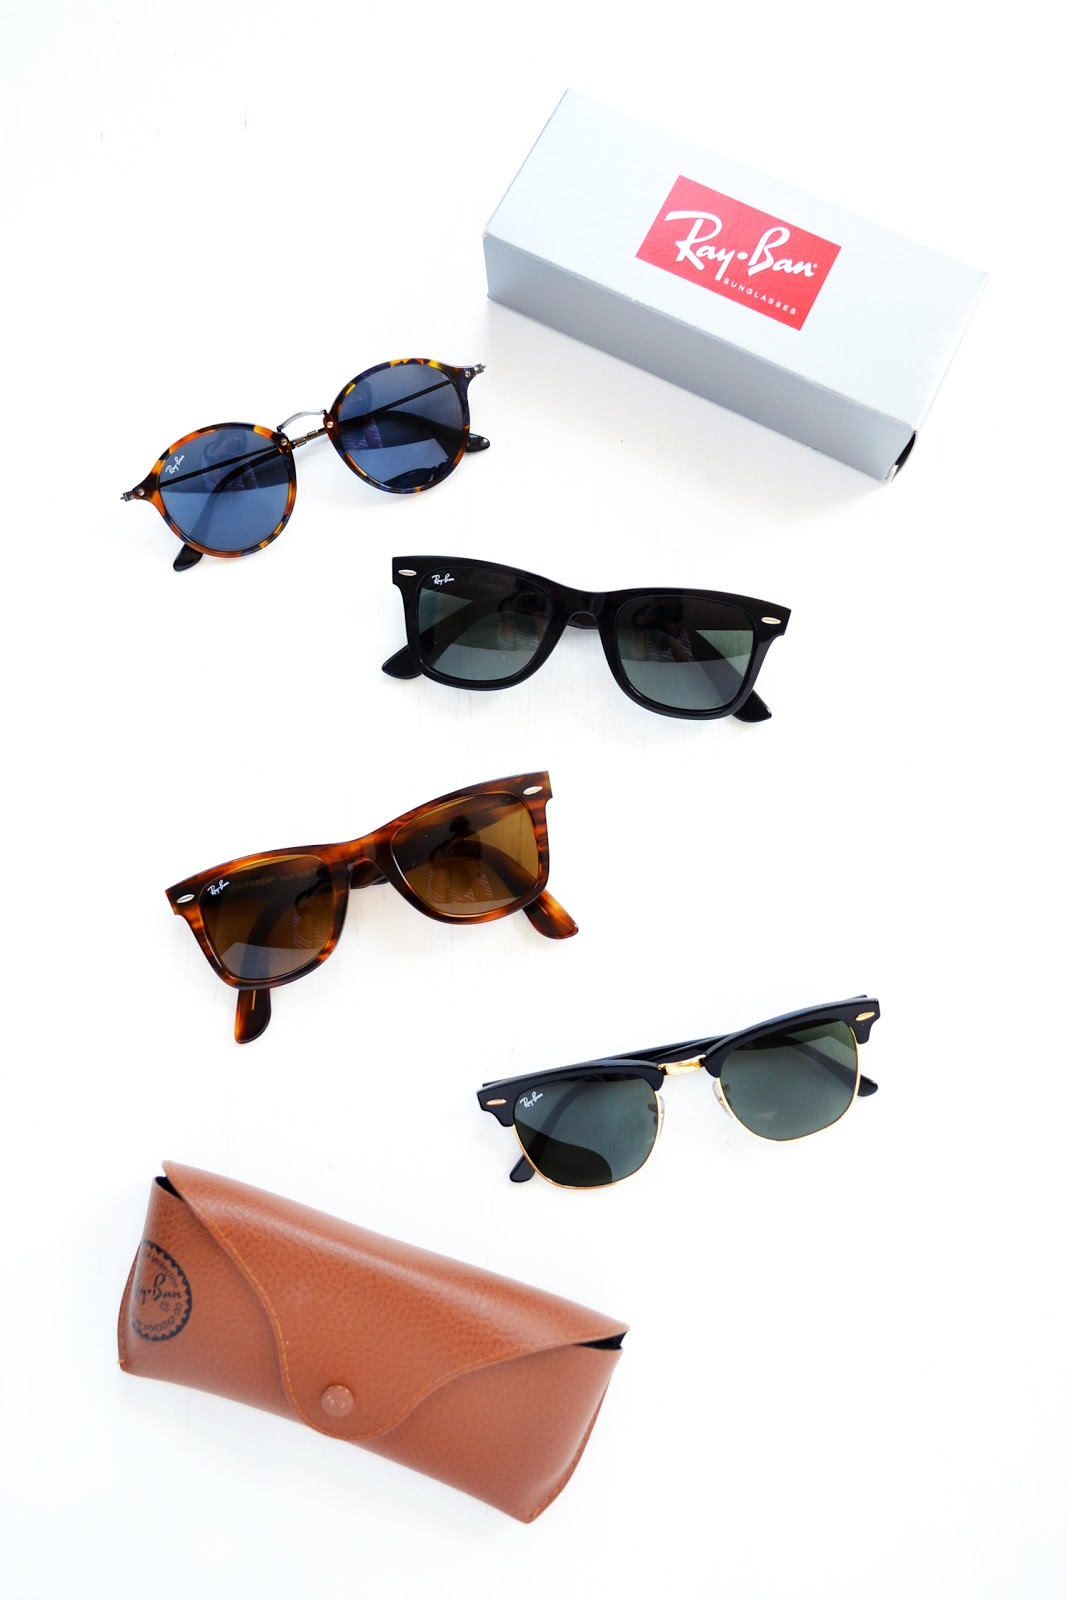 ray ban sunglasses collection, where to buy cheap ray bans online